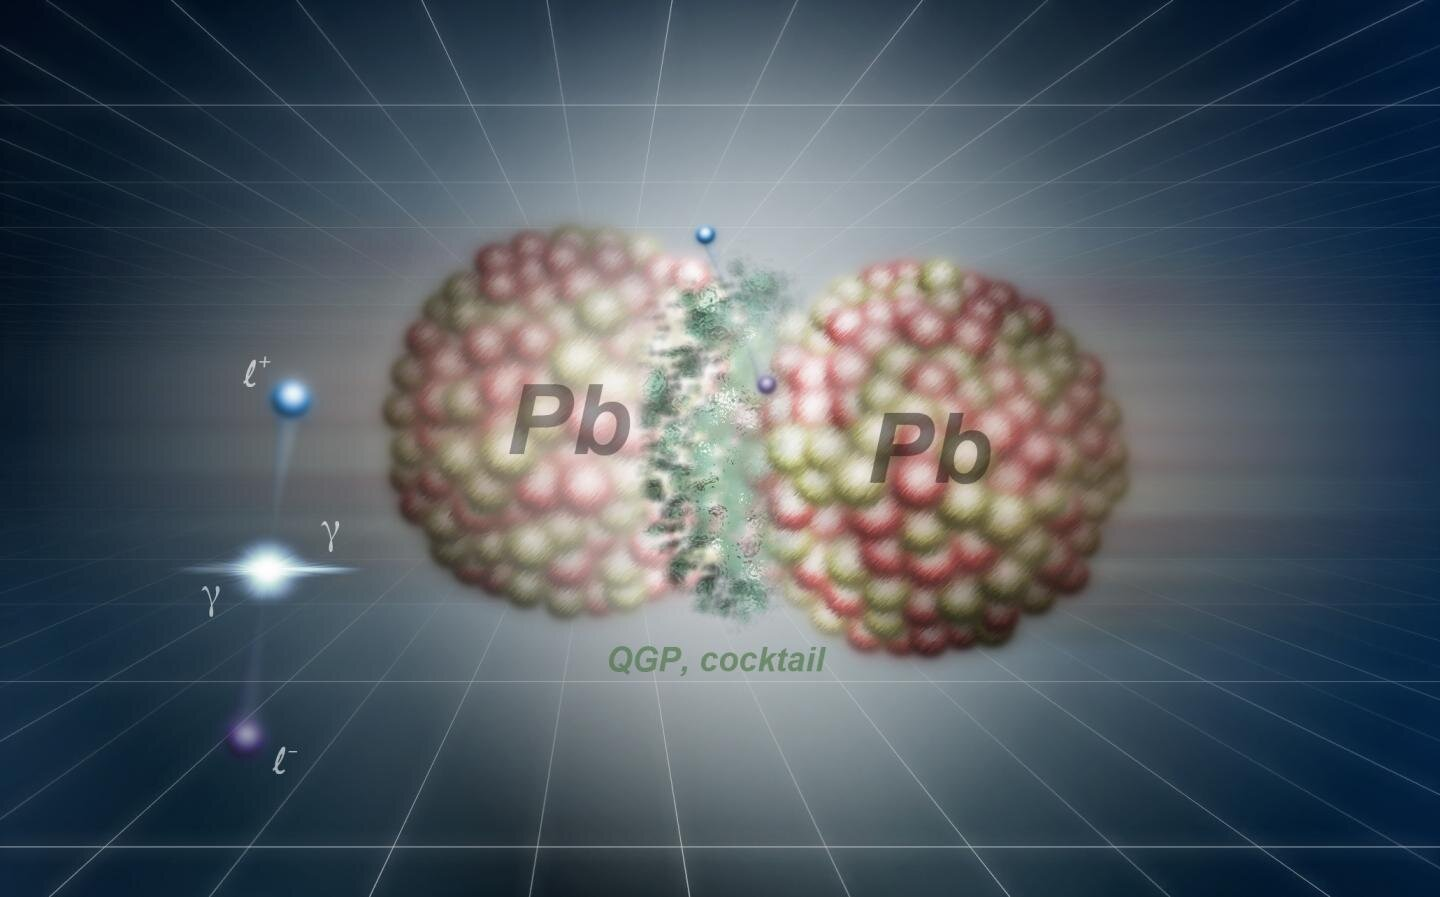 Creation without contact in the collisions of lead and gold nuclei